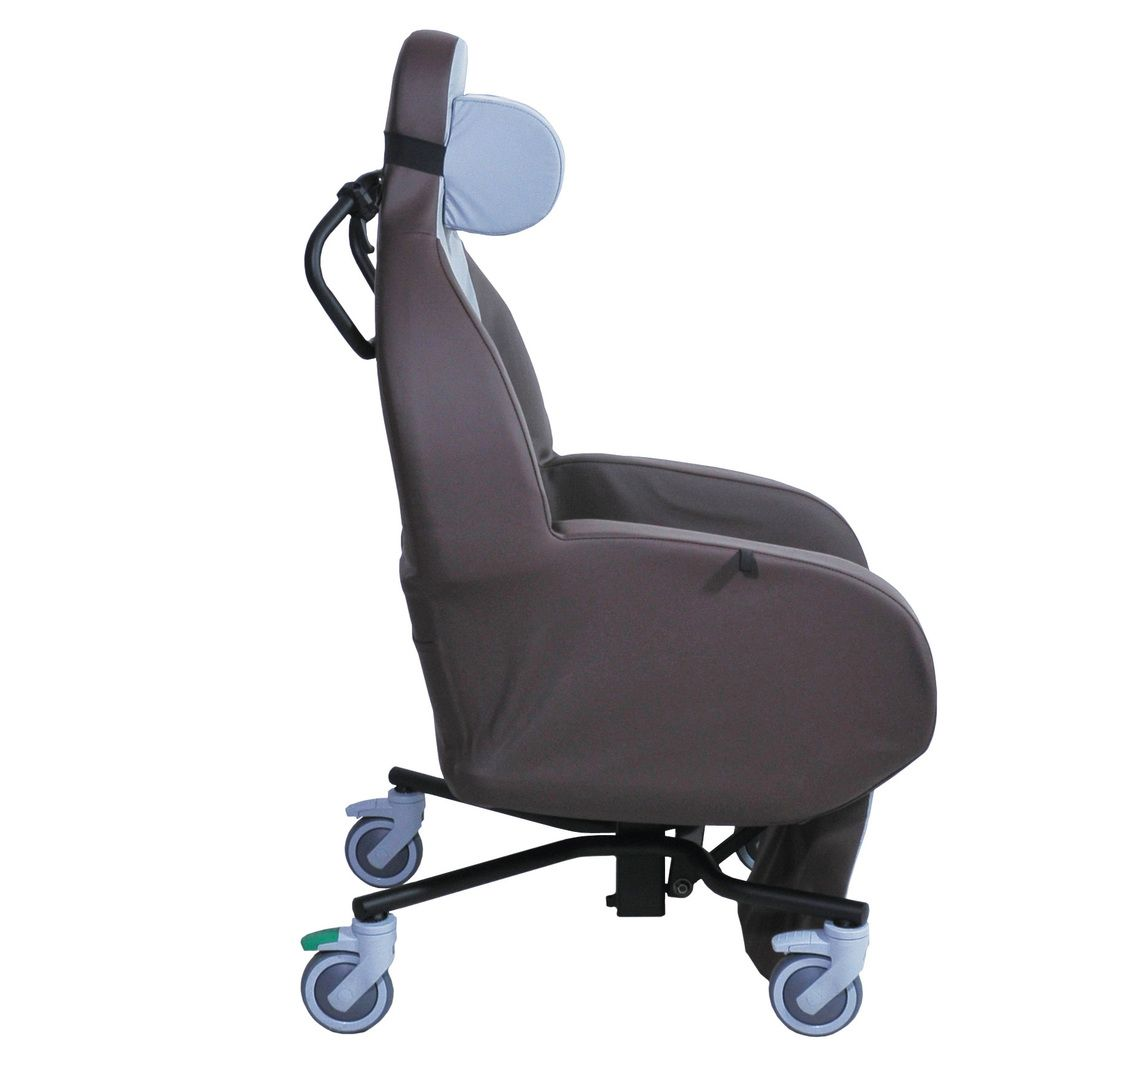 The Integra Shell Seat shown tilited forward for getting out of the chair